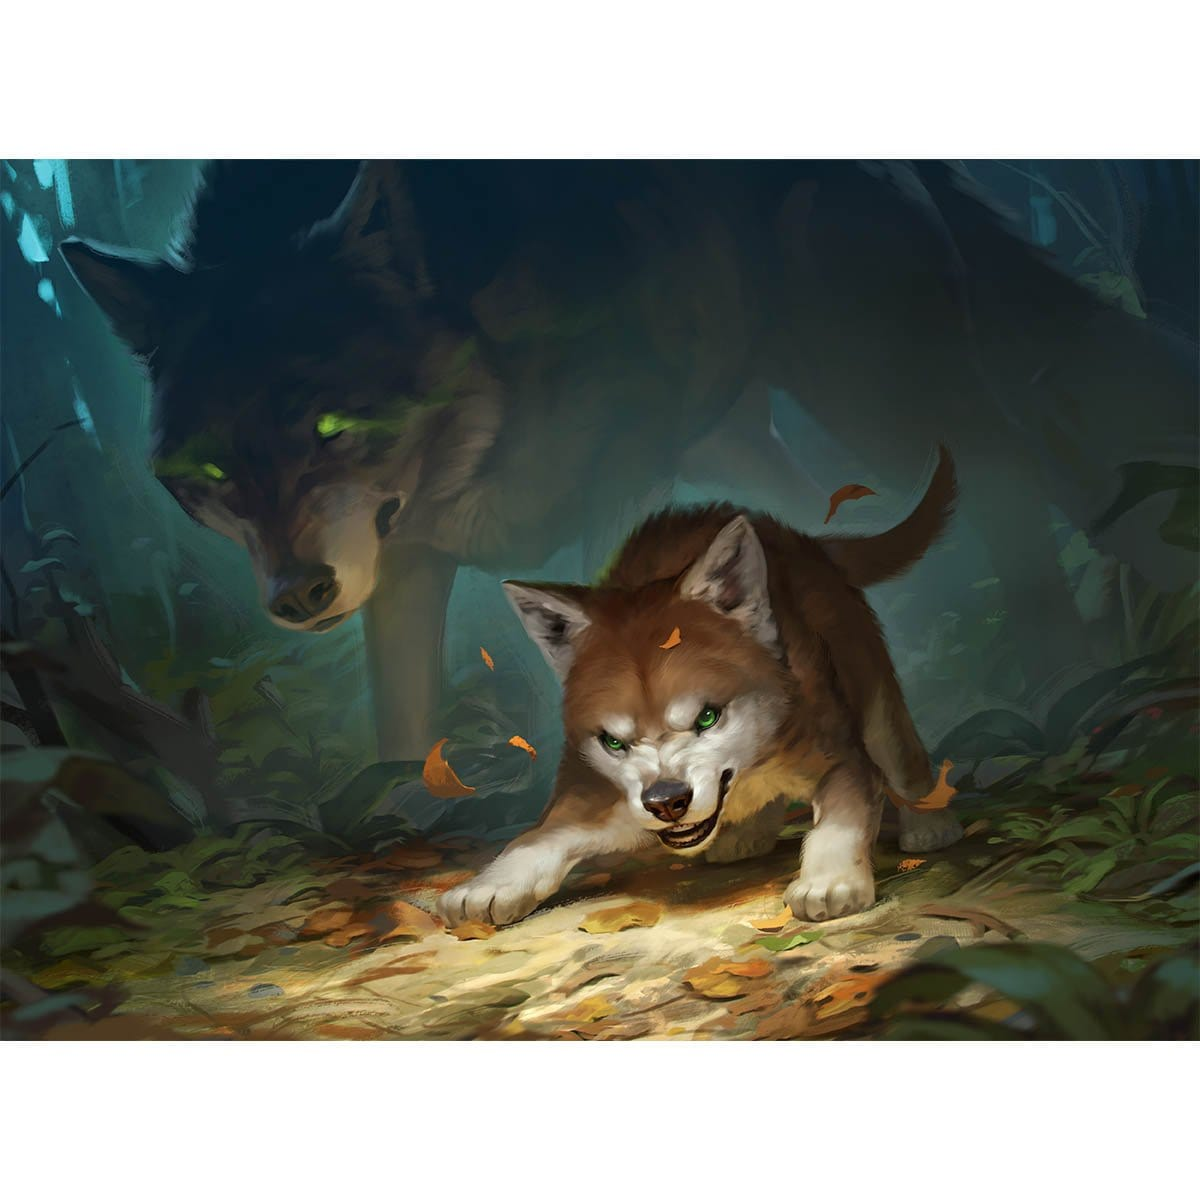 Ferocious Pup Print - Print - Original Magic Art - Accessories for Magic the Gathering and other card games